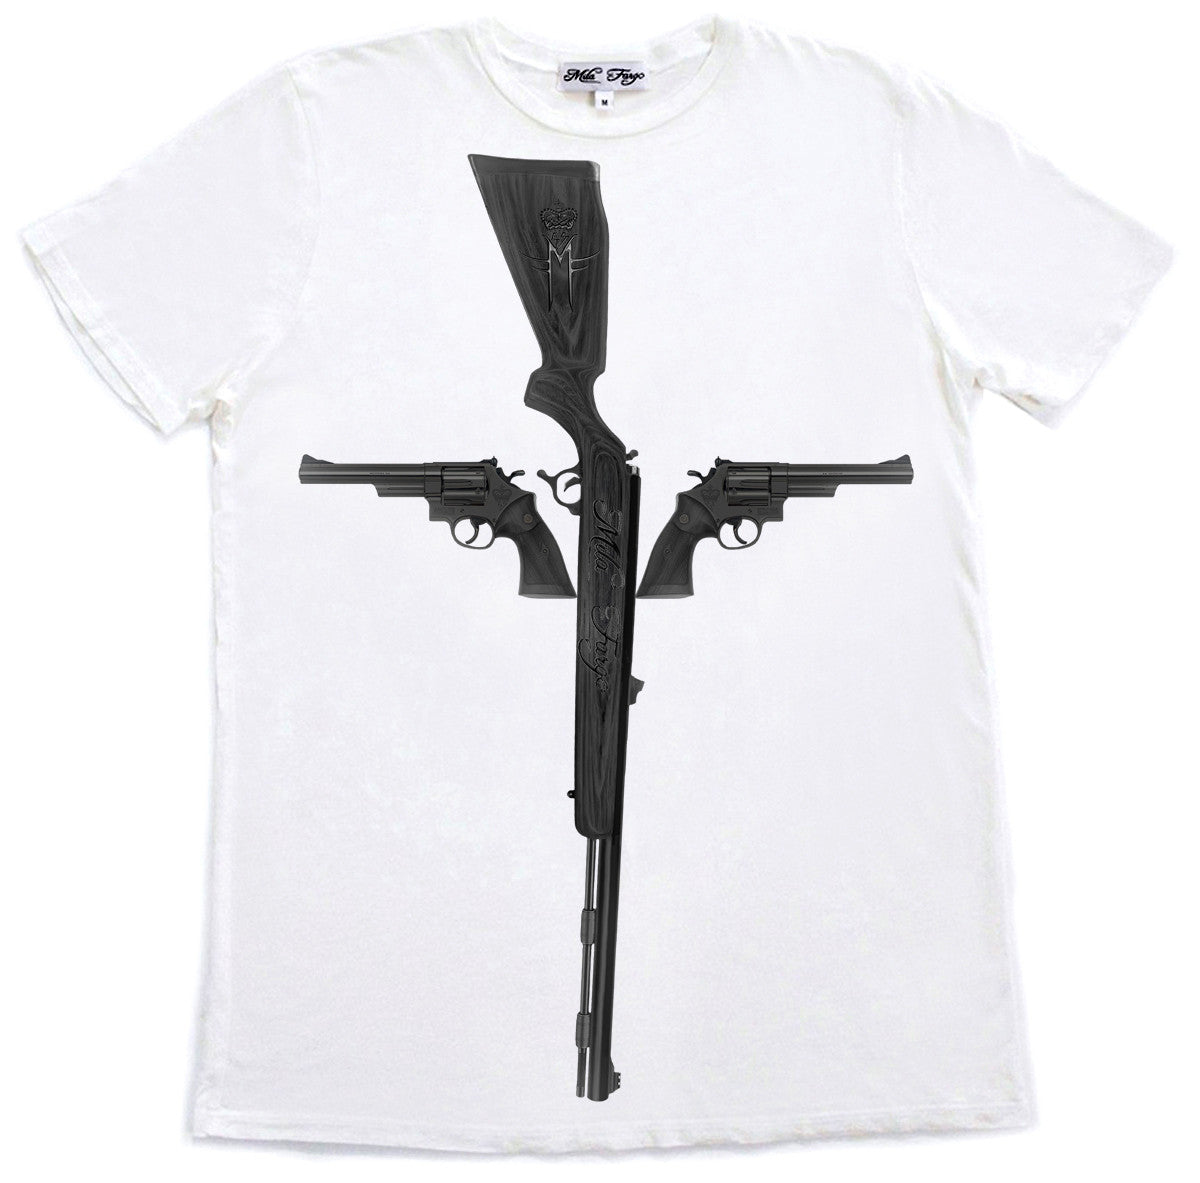 GUN CROSS T-SHIRT | White Mila Fargo T shirt